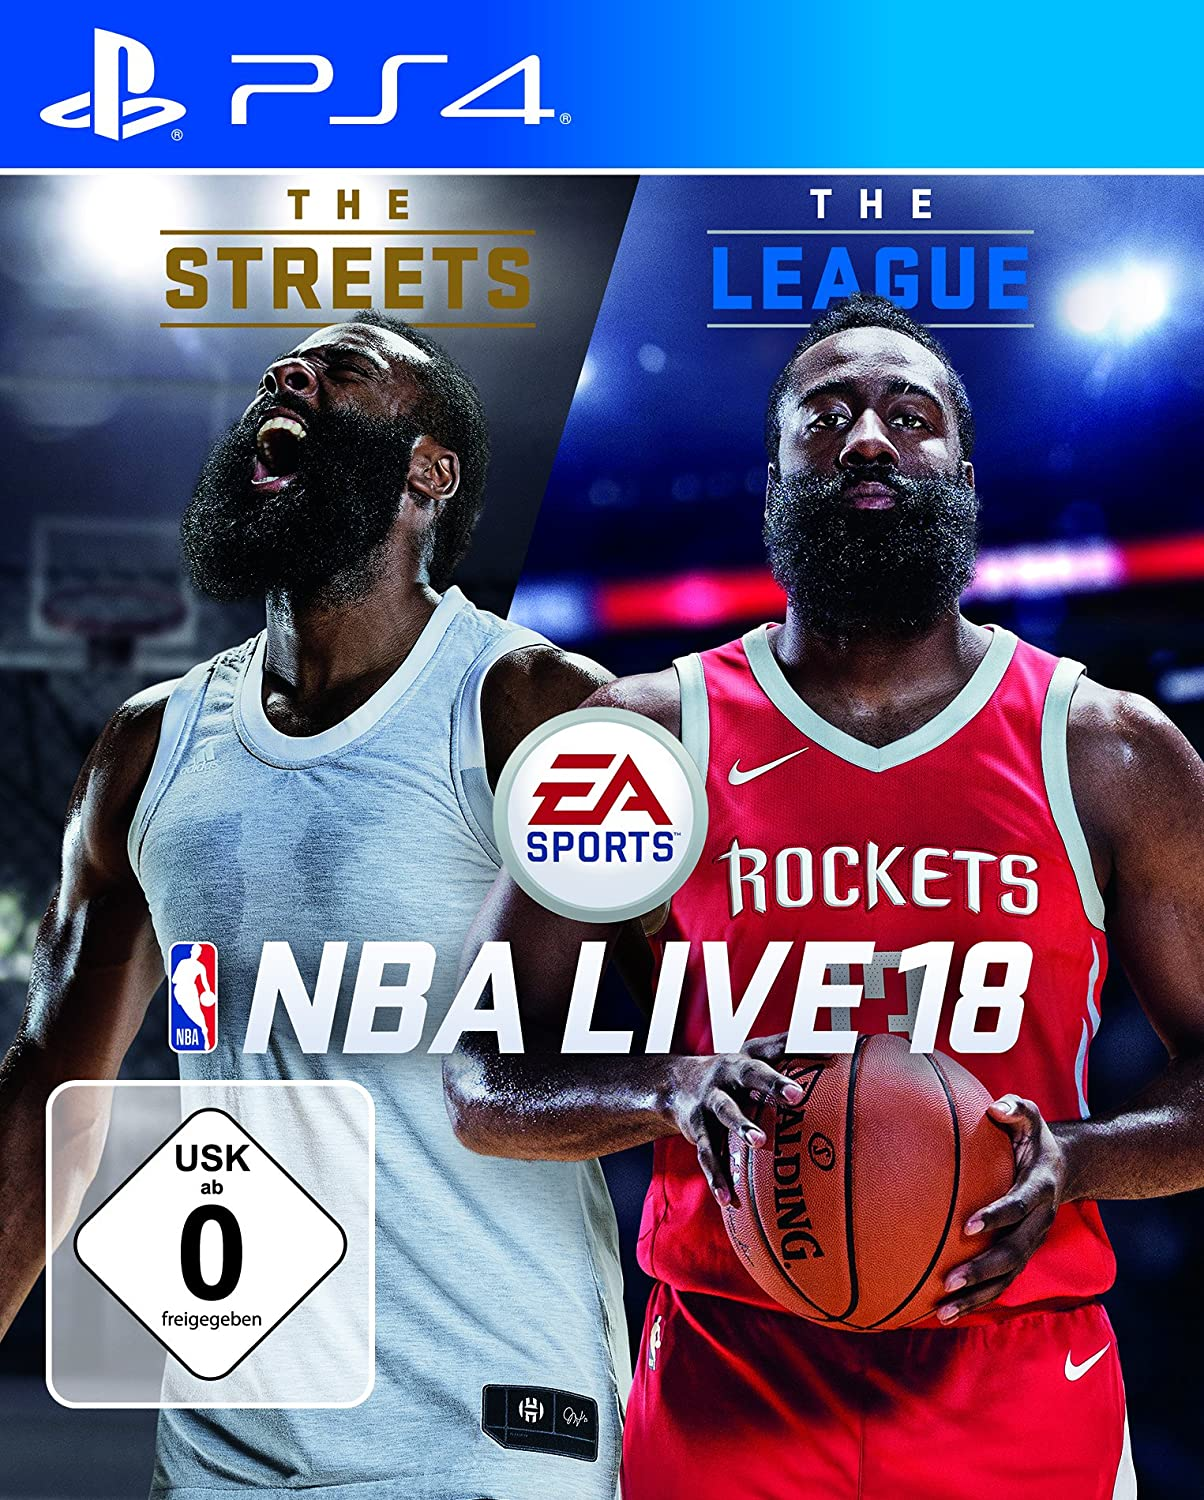 NBA LIVE 18: The One Edition - [PlayStation 4]: Amazon.de: Games